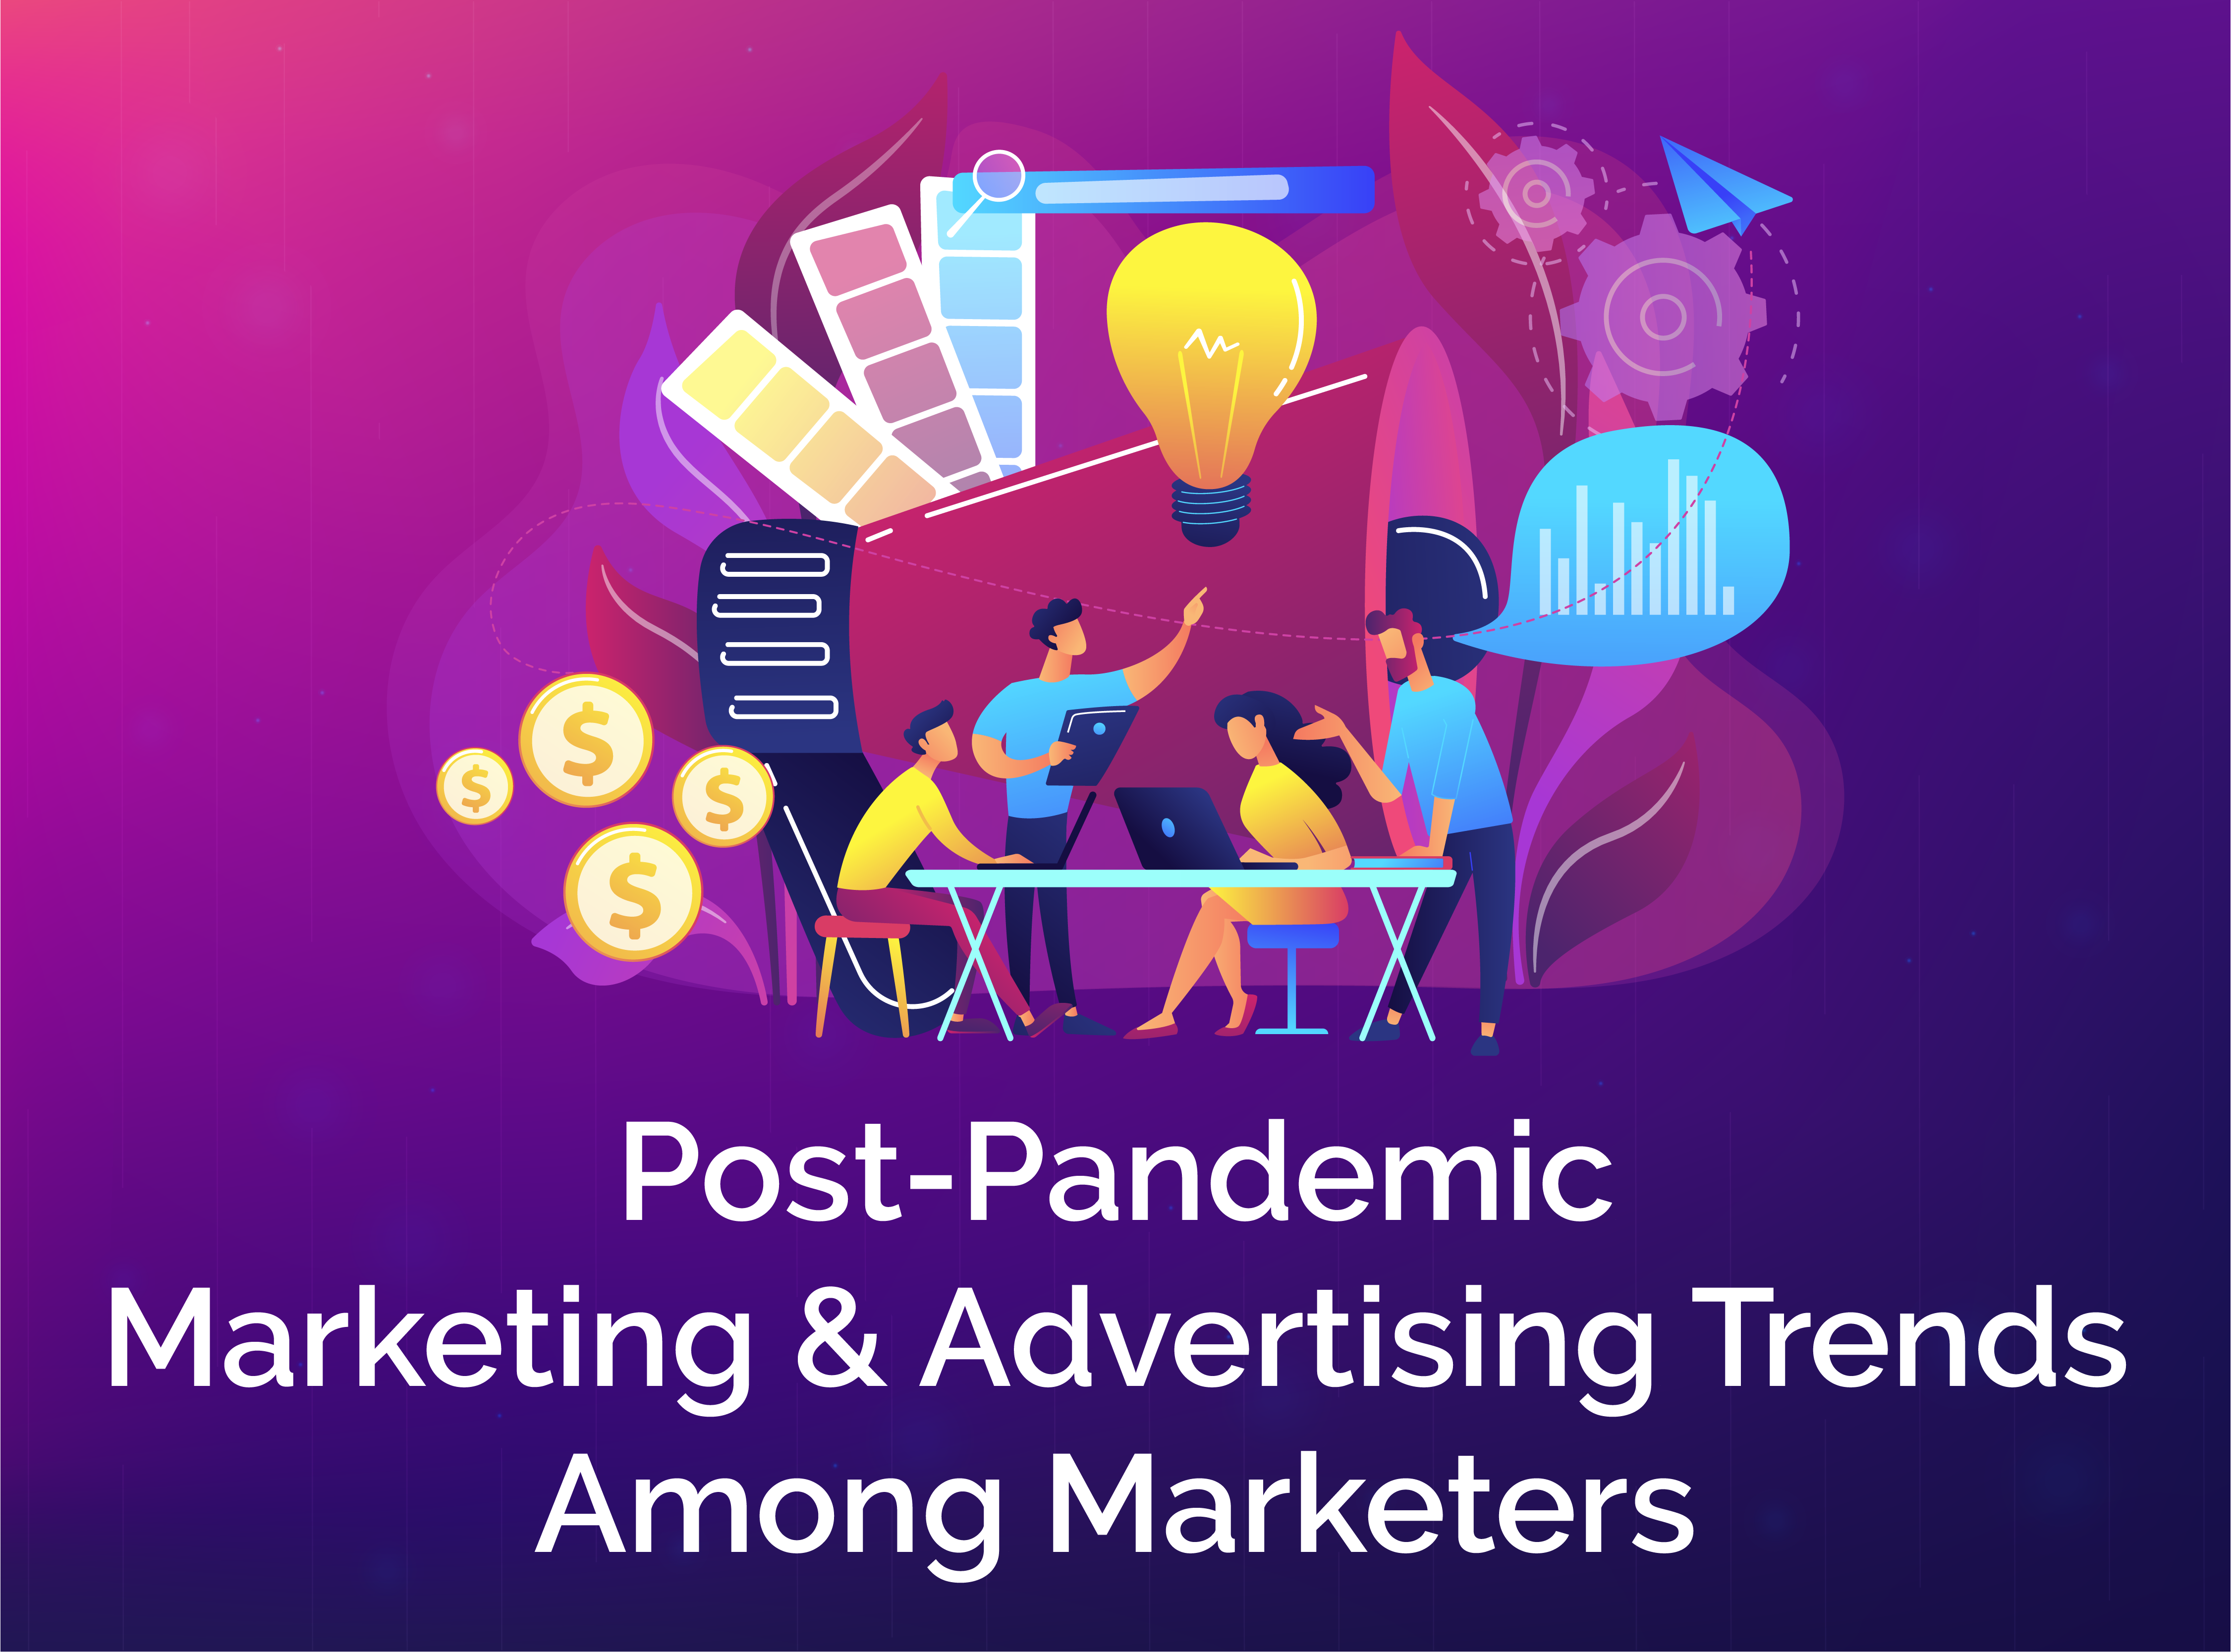 Post-pandemic marketing & advertising trends among marketers